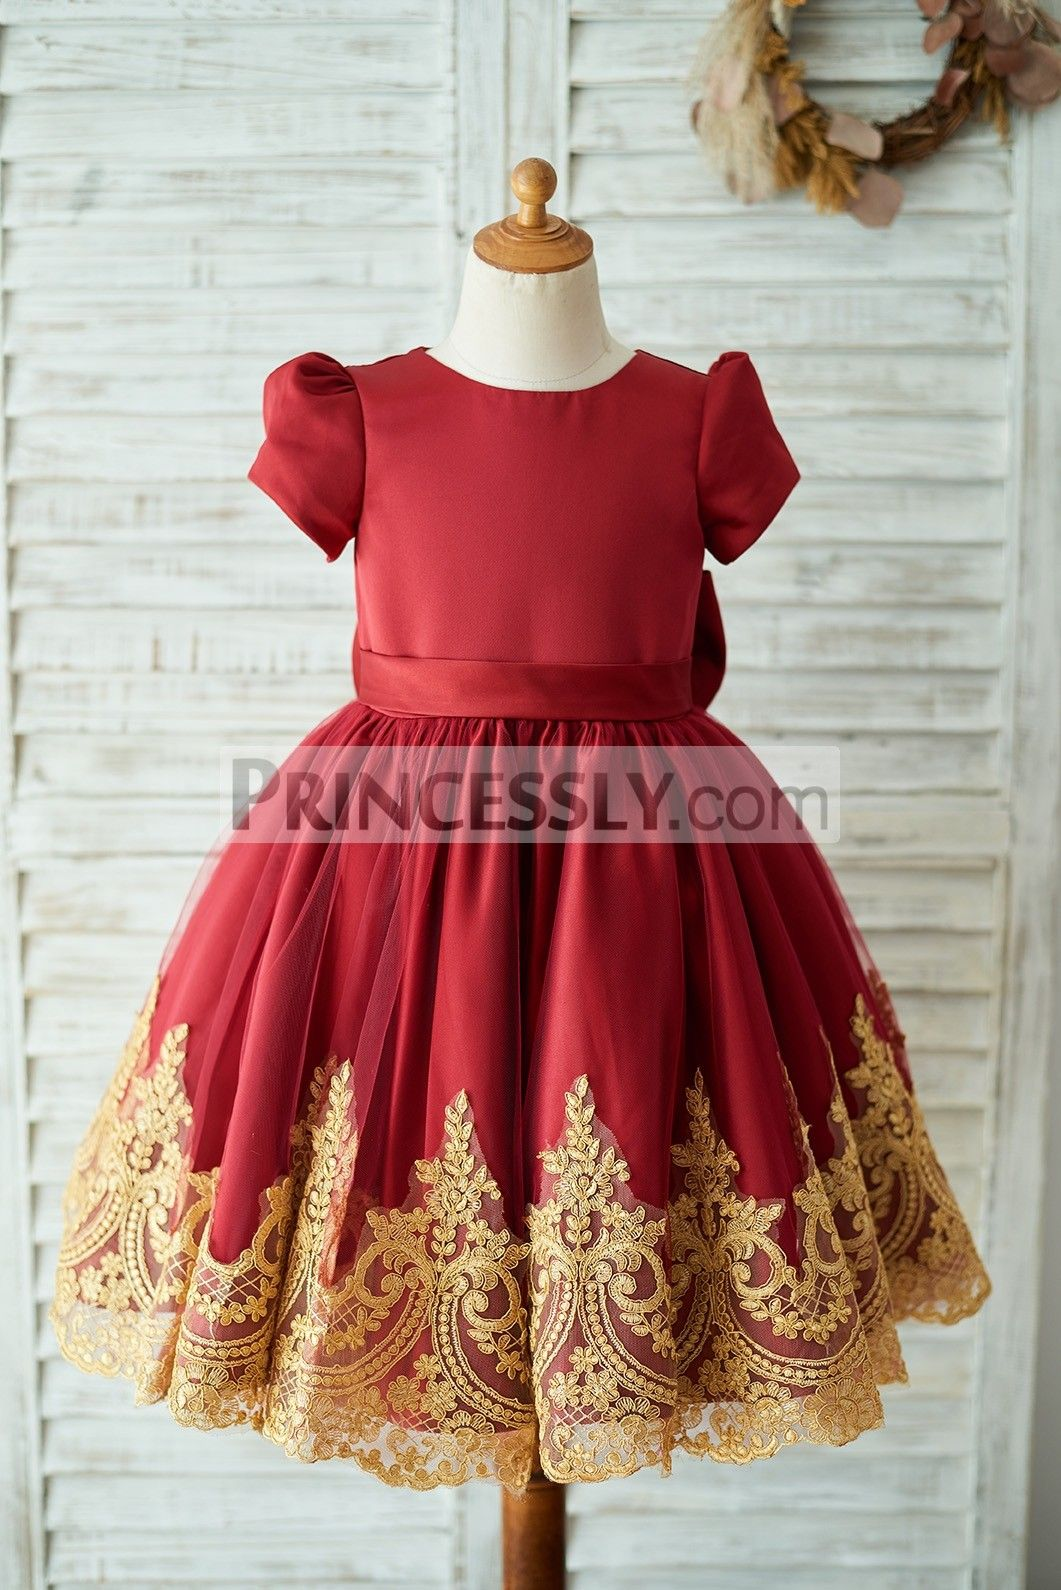 Red satin gold lace short sleeves keyhole back wedding flower girl